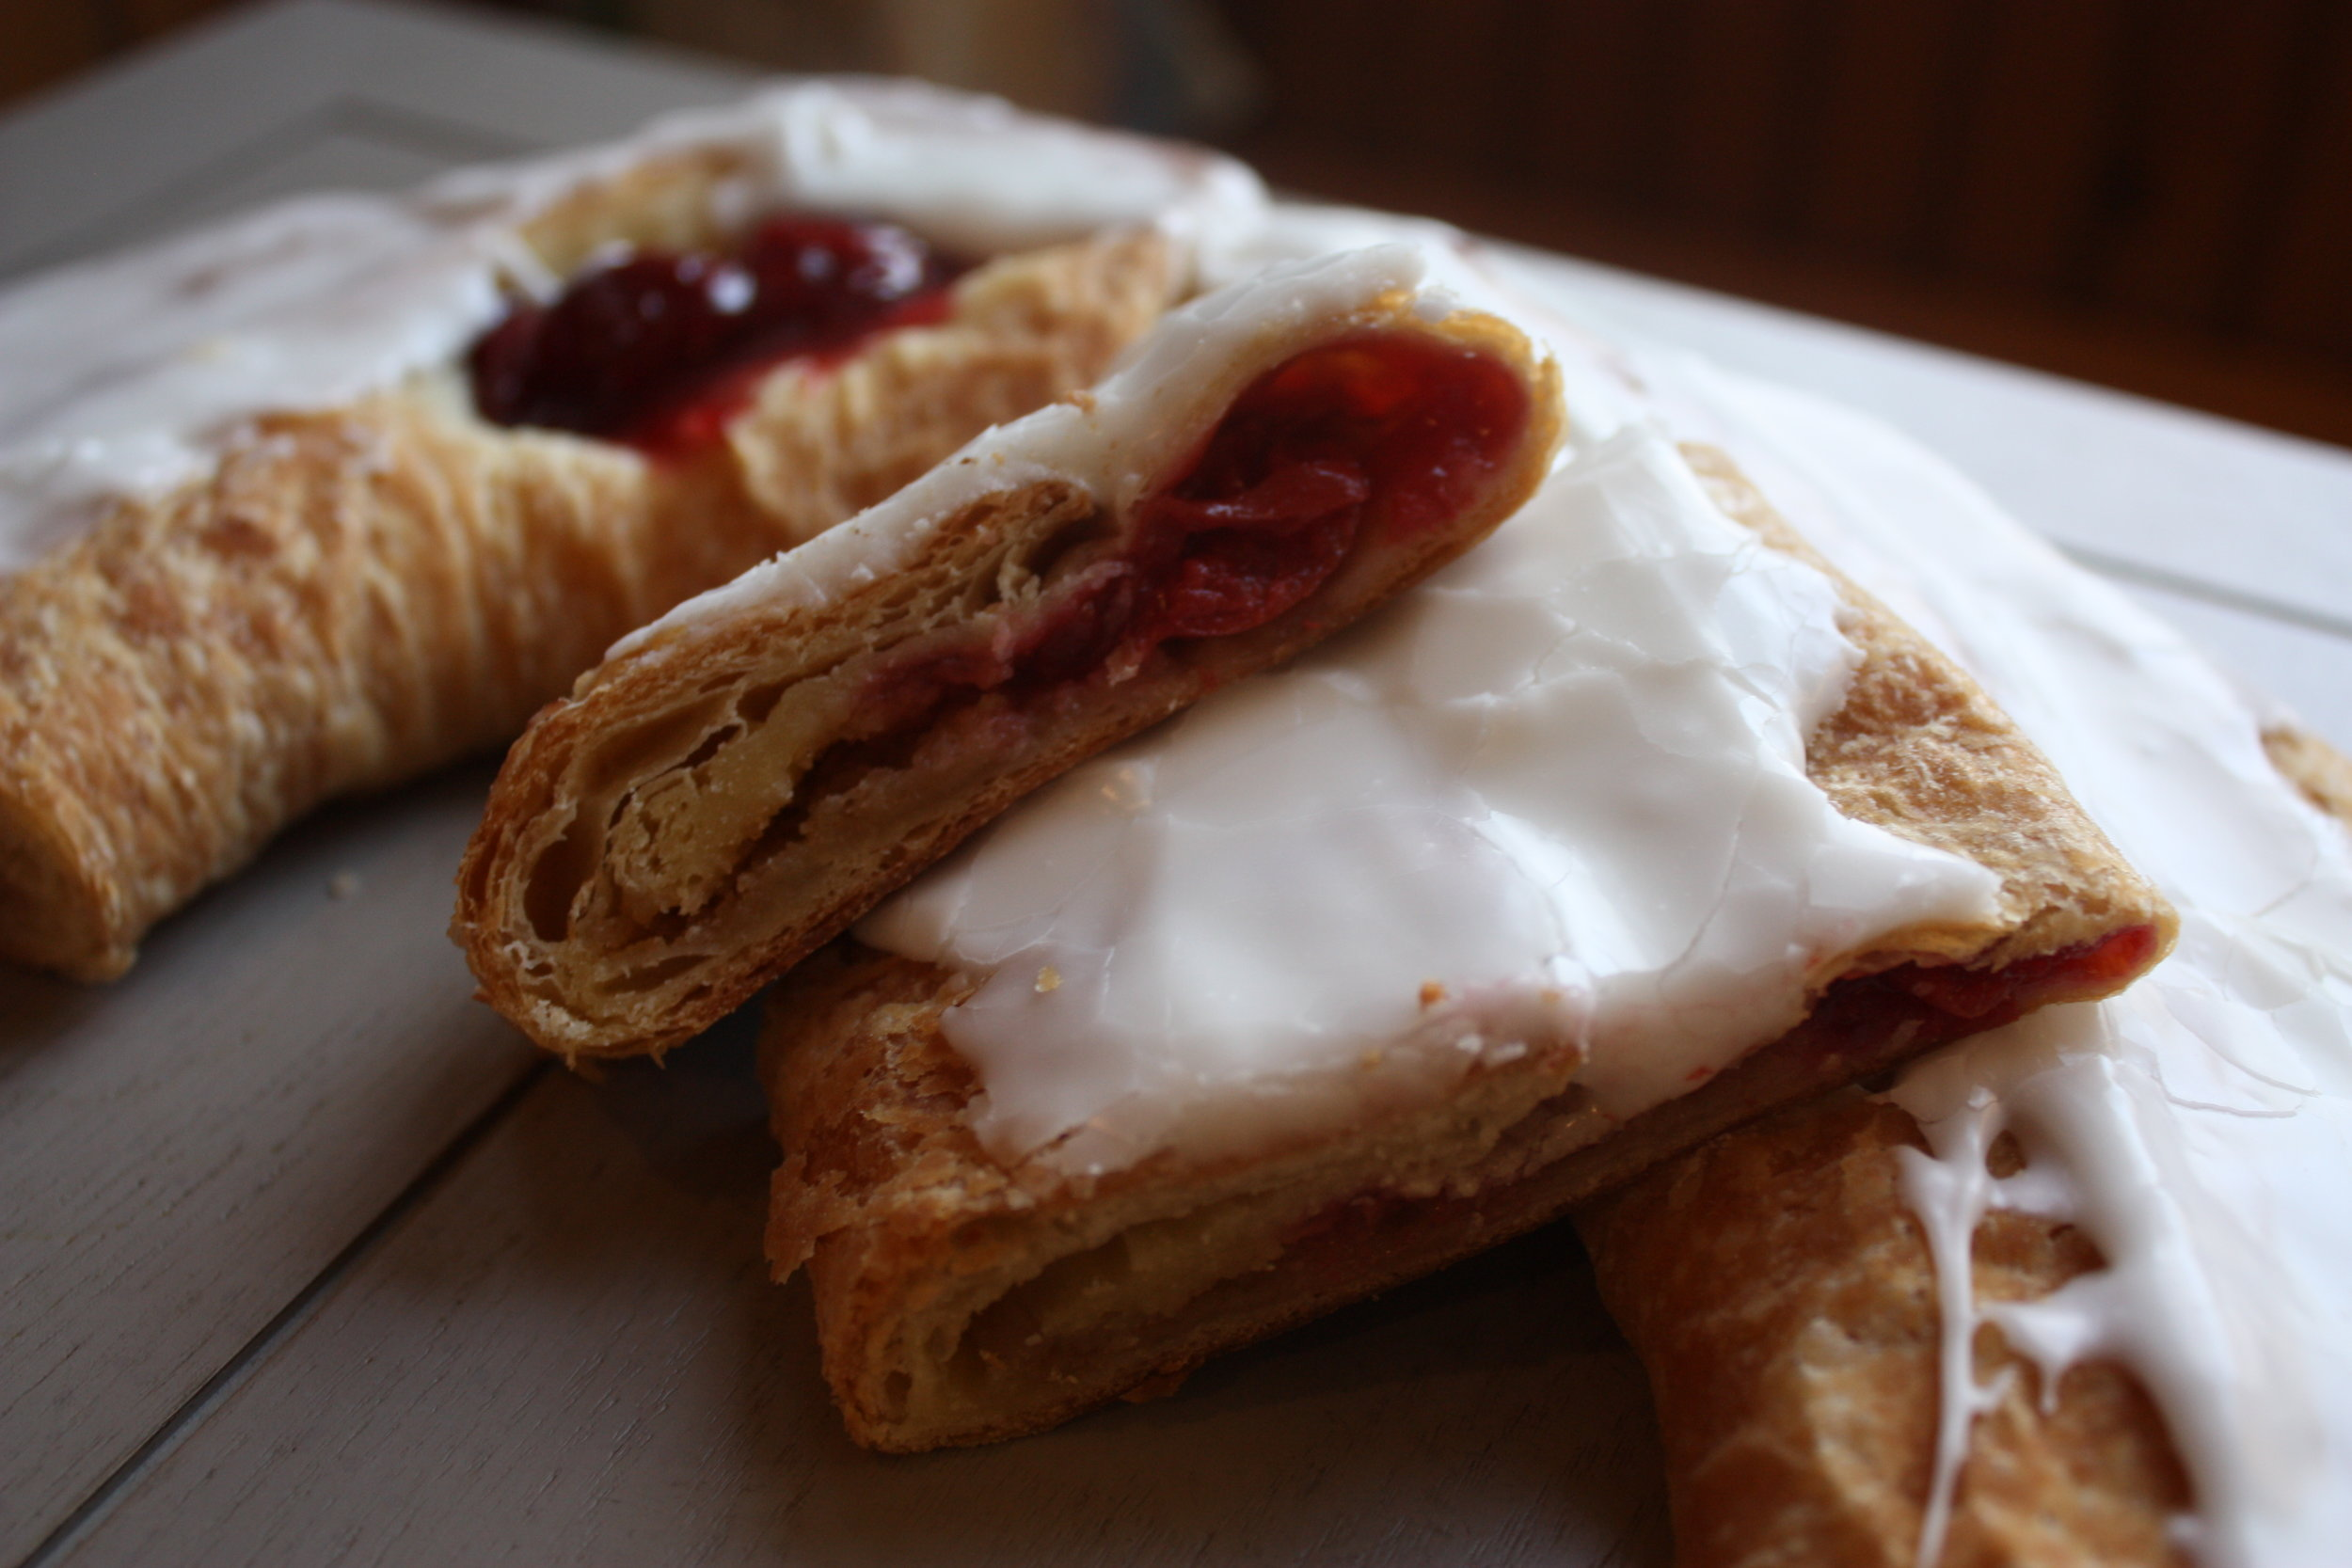 Your home for the Wisconsin Kringle - Why get them shipped when you can get them fresh from your local bakery?